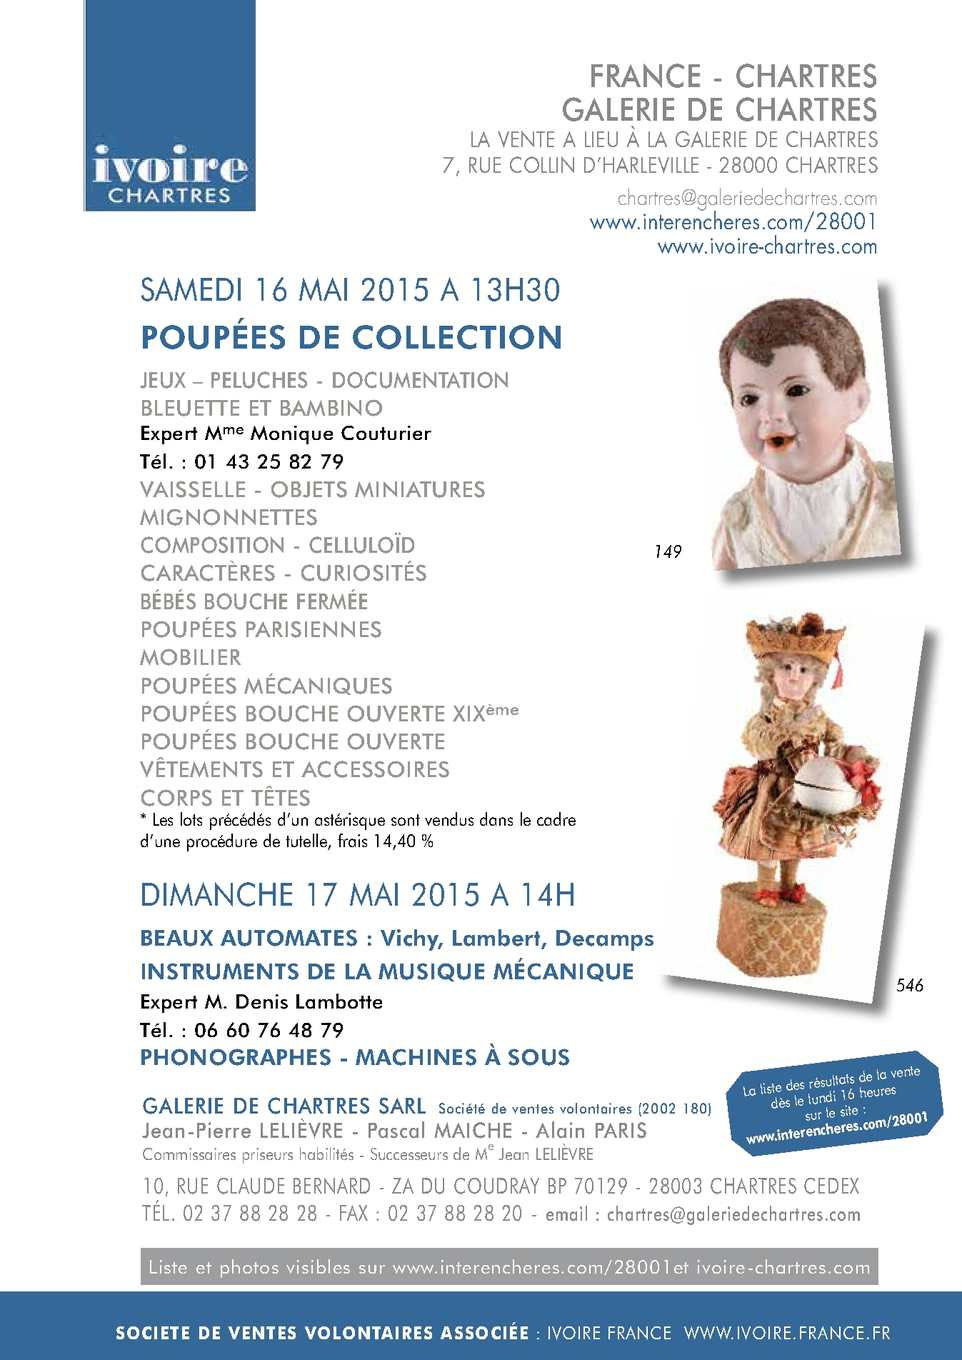 bc2a1e7d263b POUPEES DE COLLECTION - Samedi 16 mai 2015 à 13h30 ...